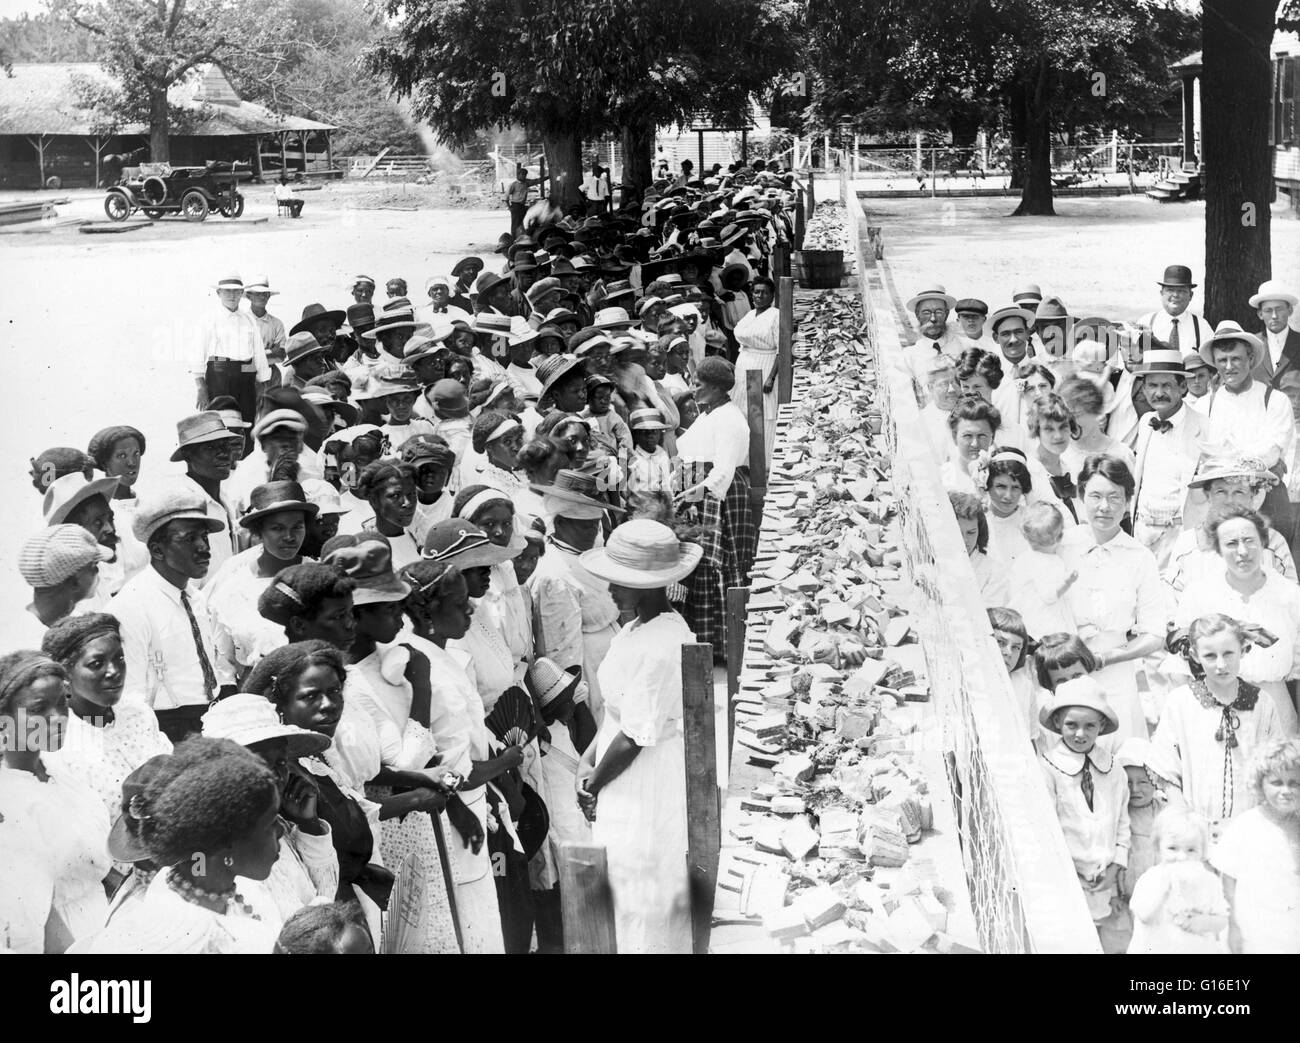 Entitled: 'F.M. Gay's annual barbecue given on his plantation every year' shows crowds of African-American - Stock Image